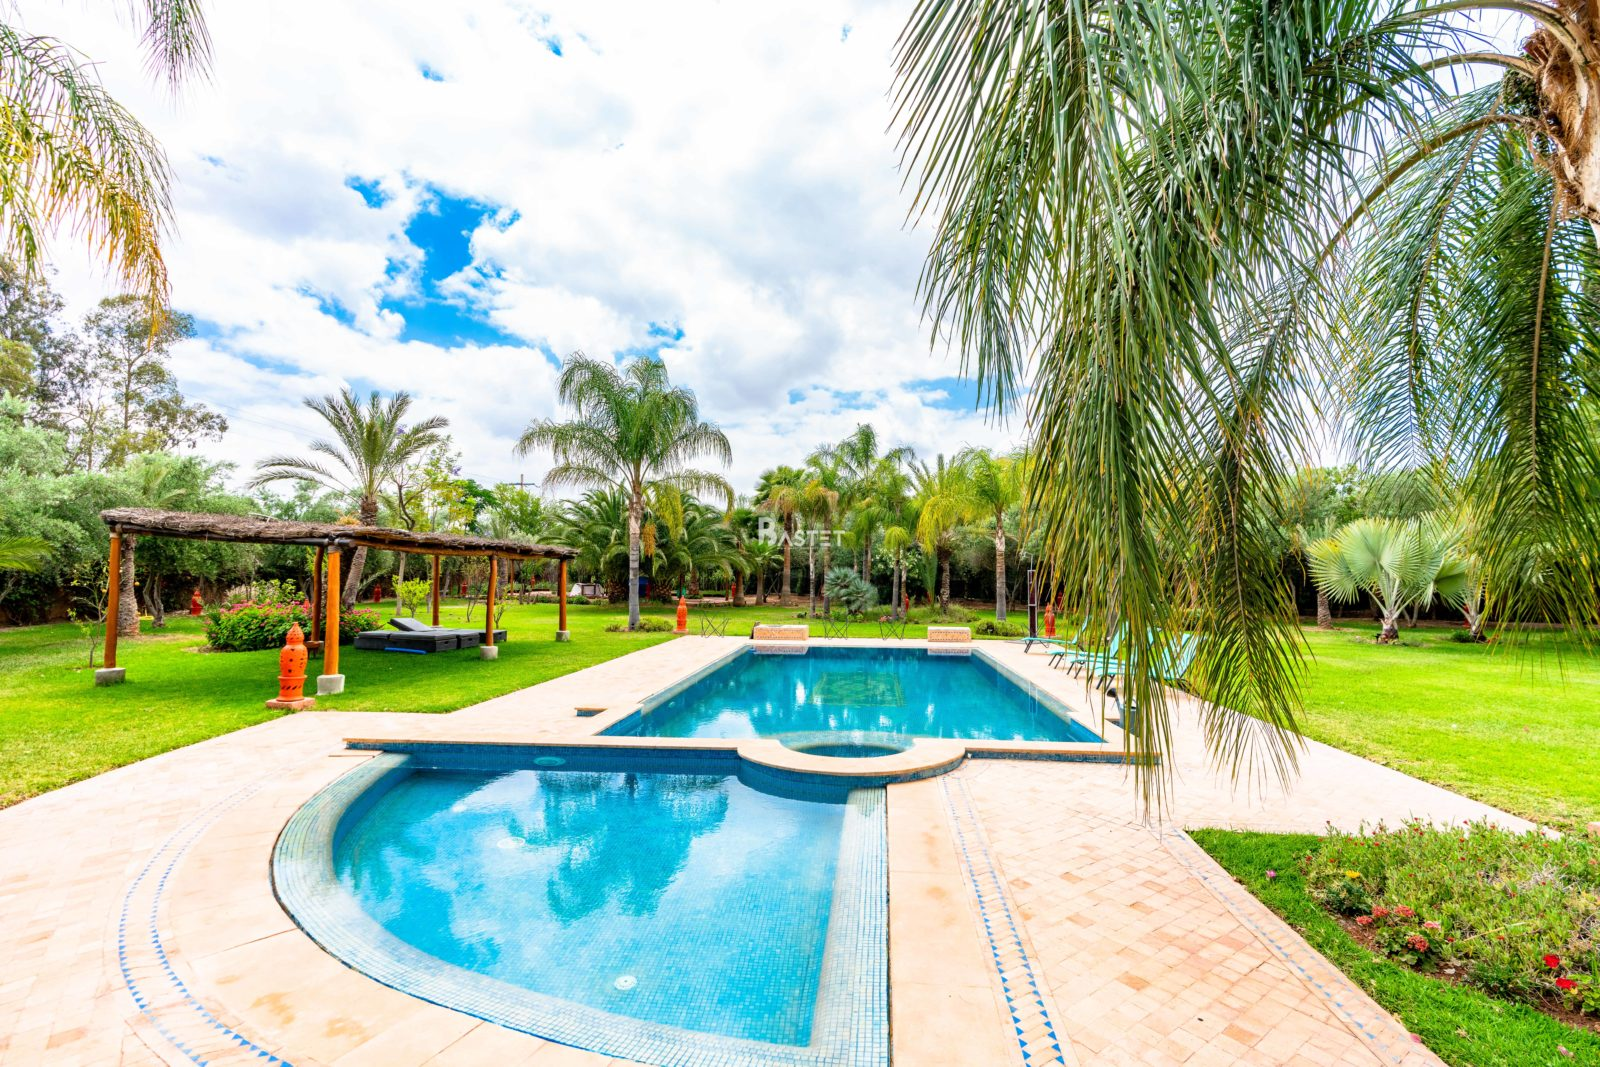 LUXURY FAMILY VILLA FOR HOLIDAY RENTAL IN MARRAKECH